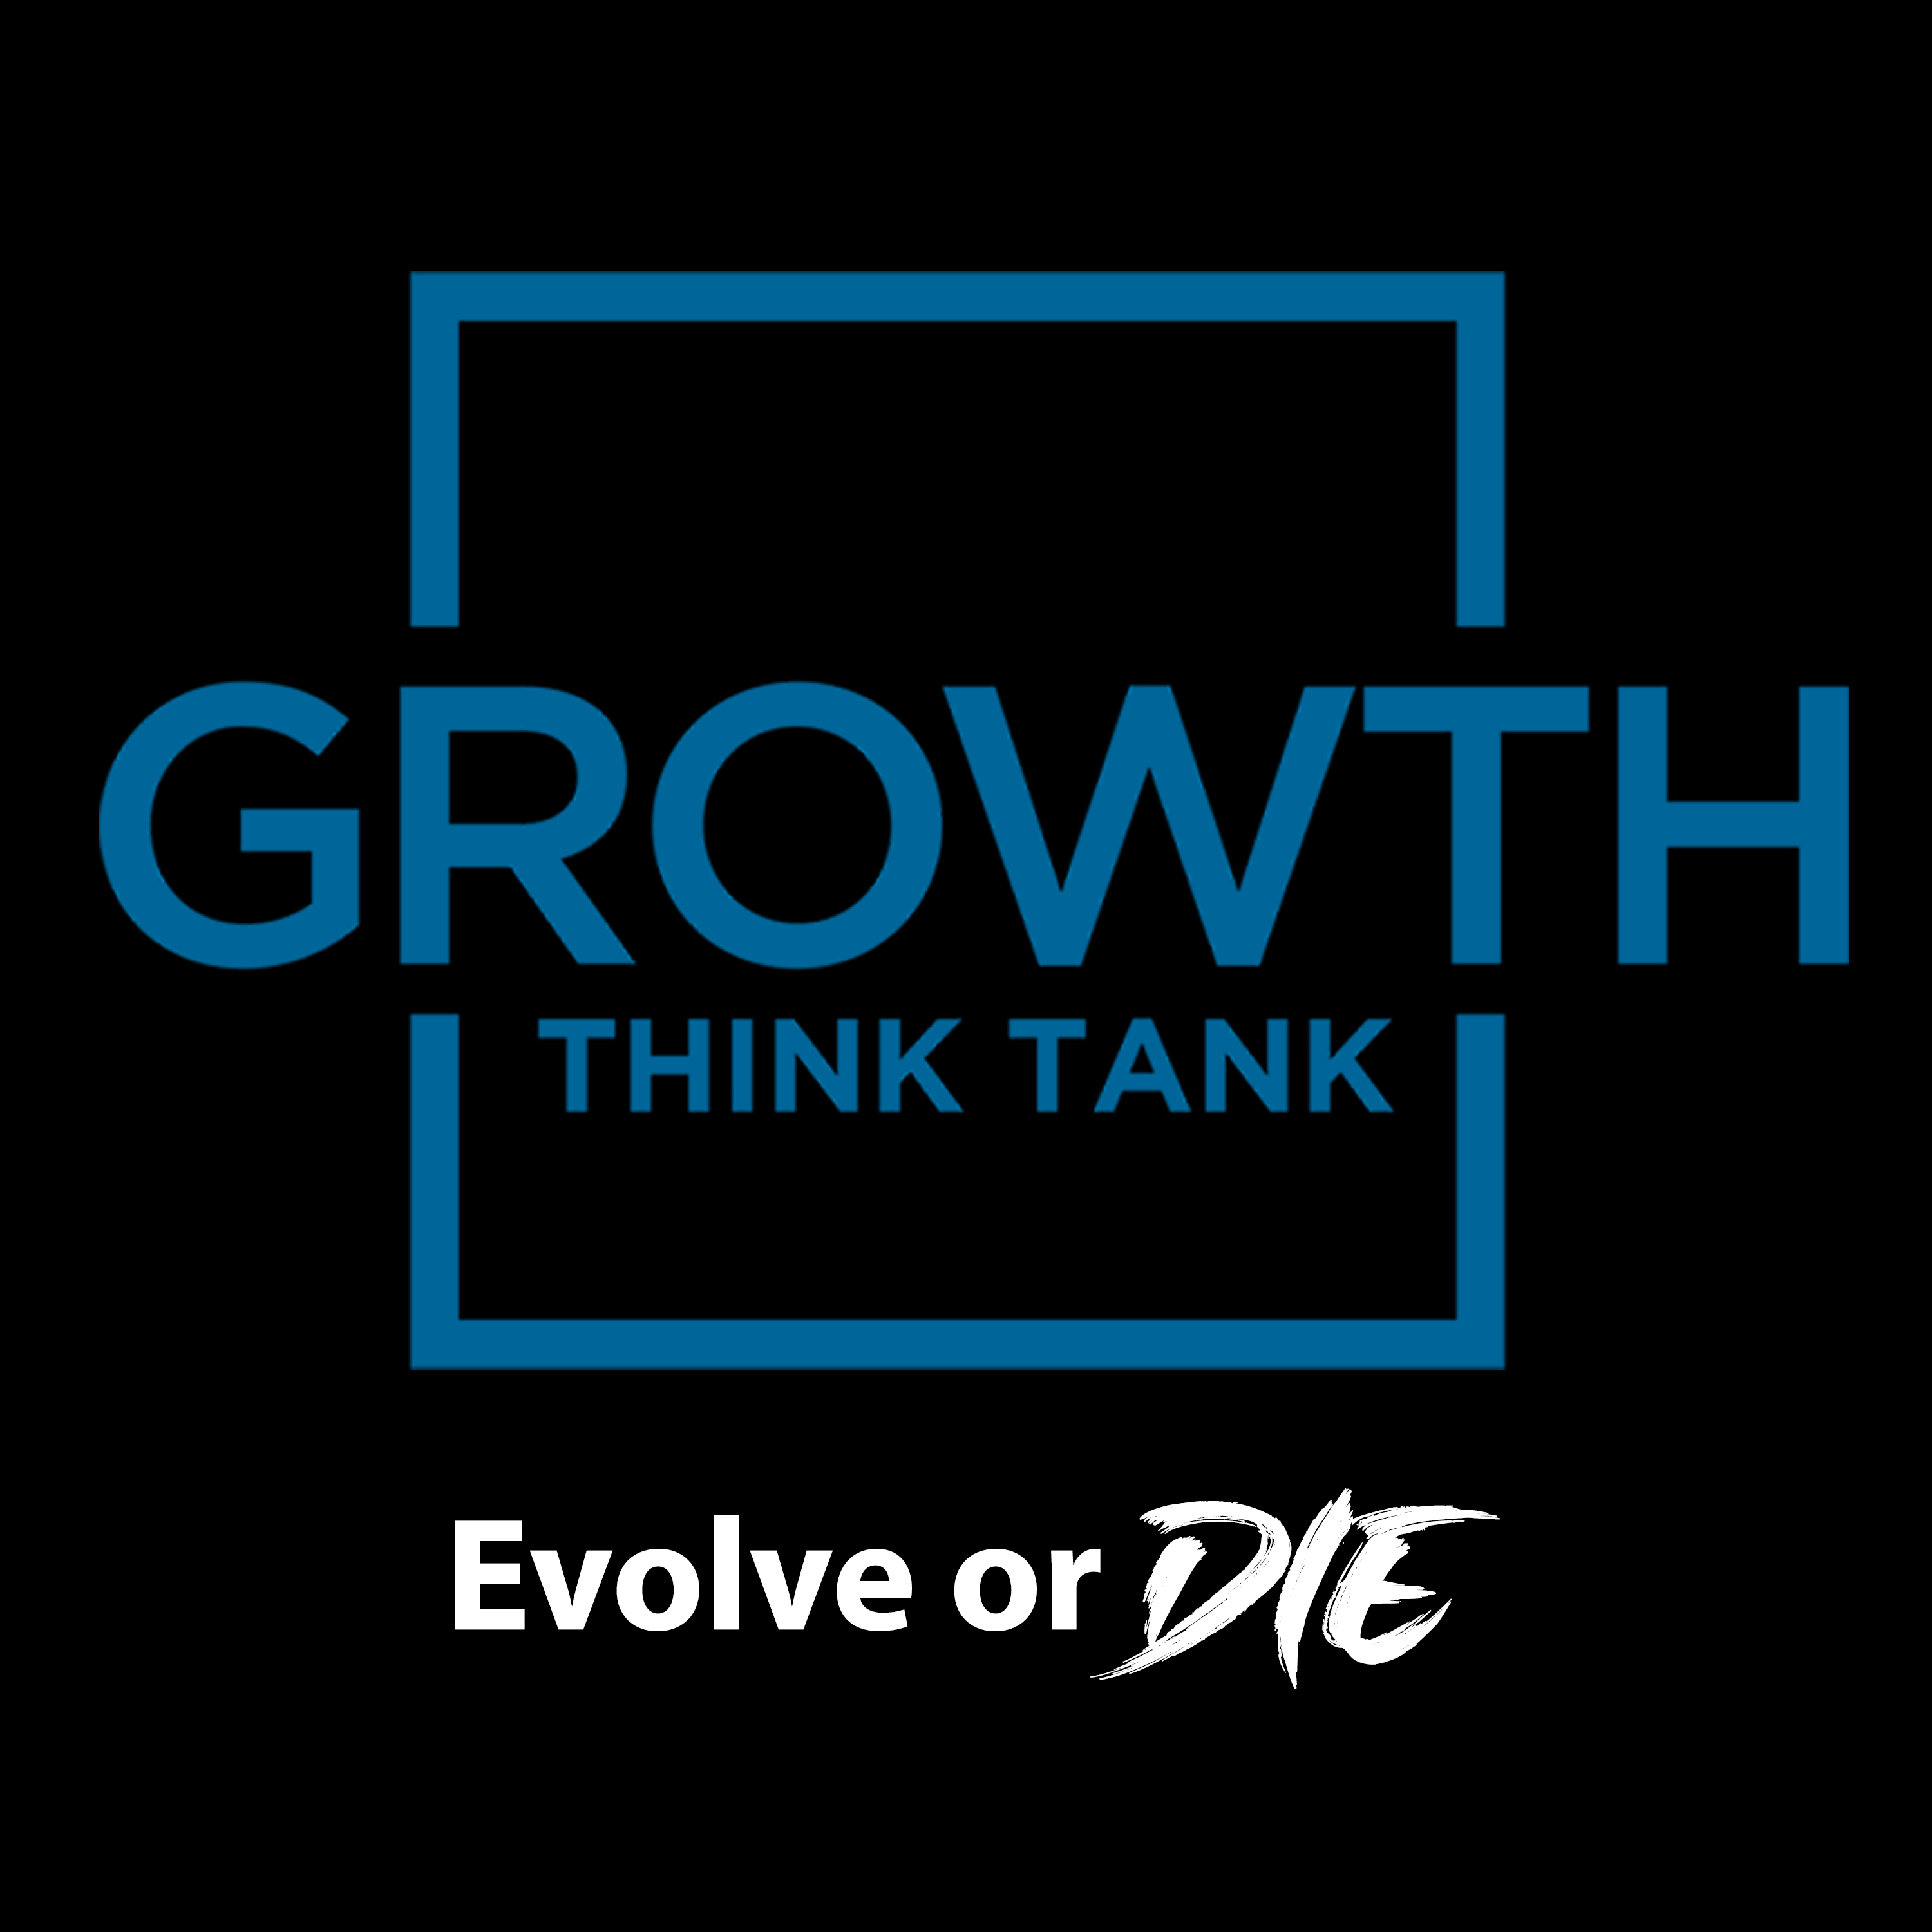 Growth Think Tank (fka